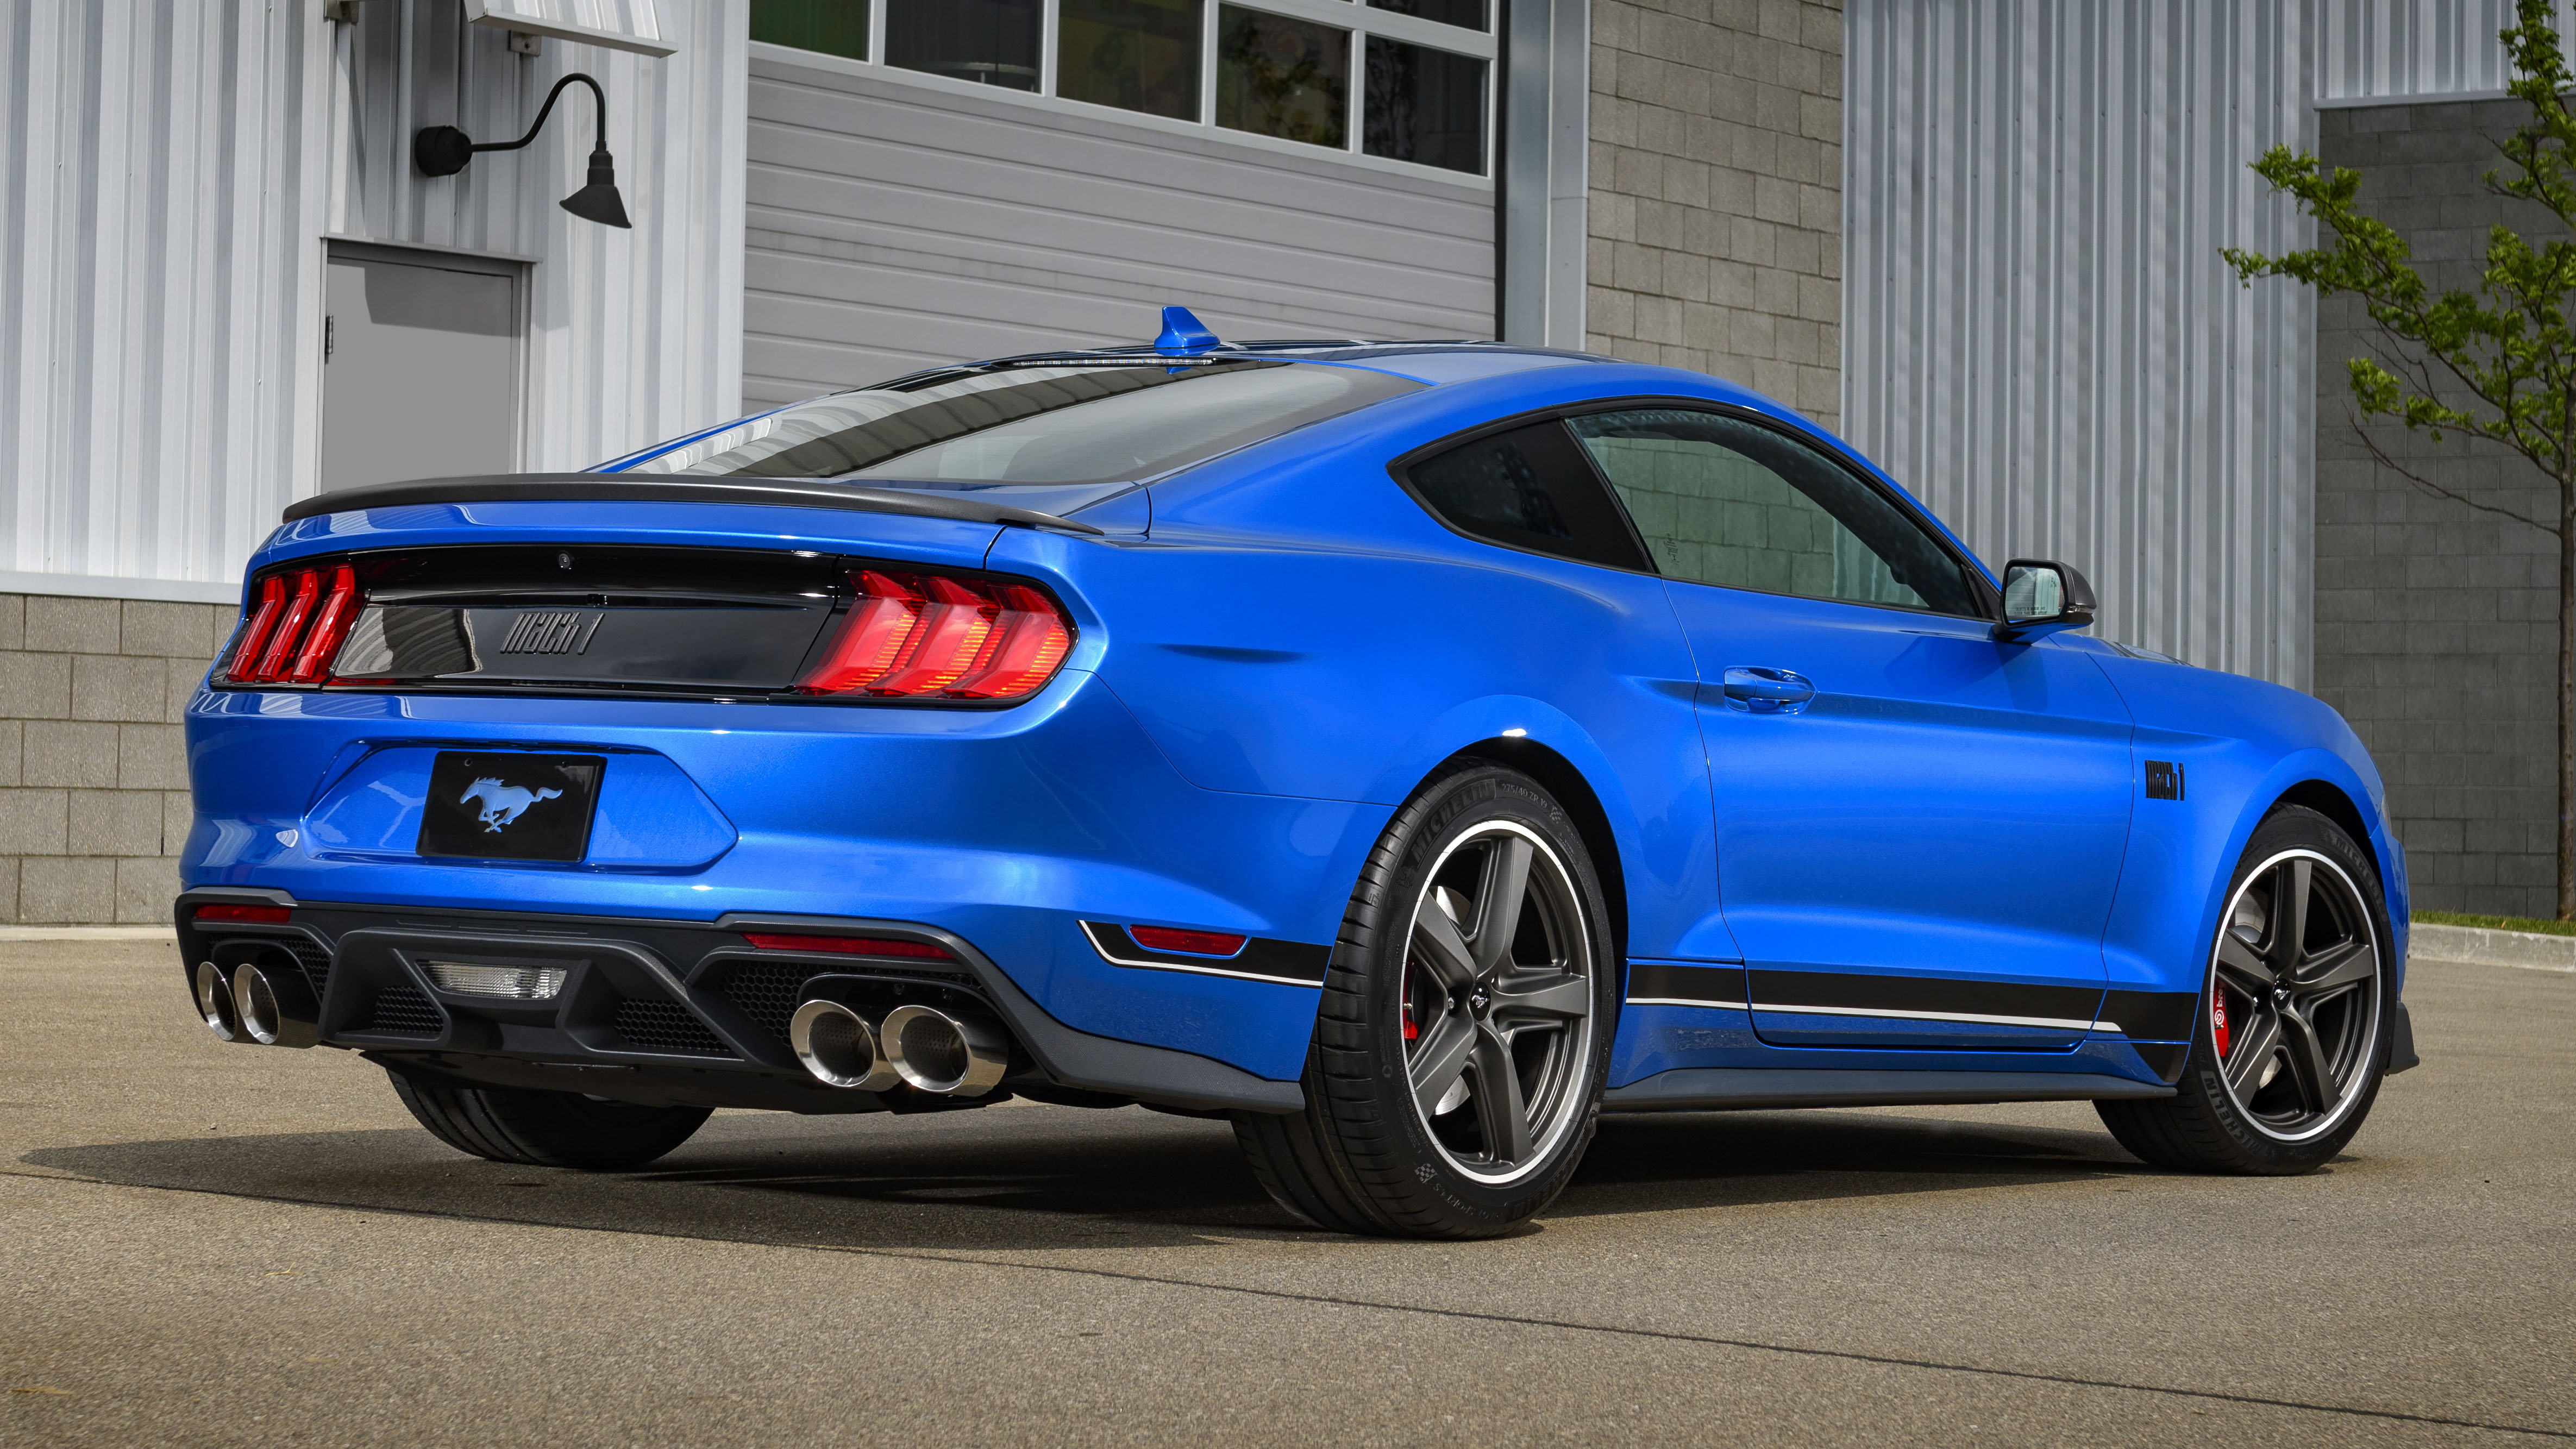 2021 Ford Mustang Mach 1 Handling Package the way to ...